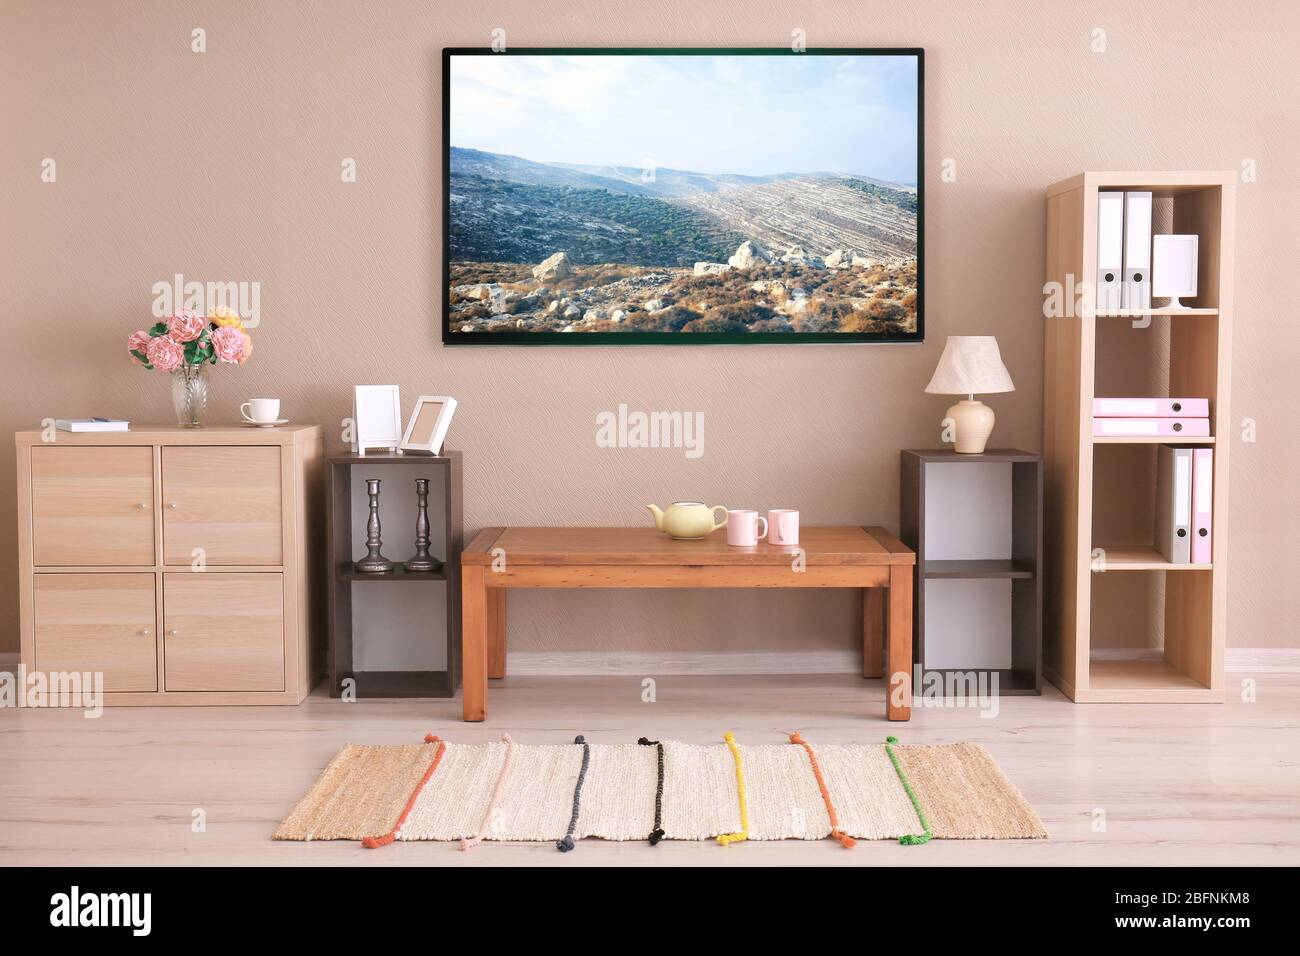 Cozy Interior Of Living Room With Tv On Wall Stock Photo Alamy